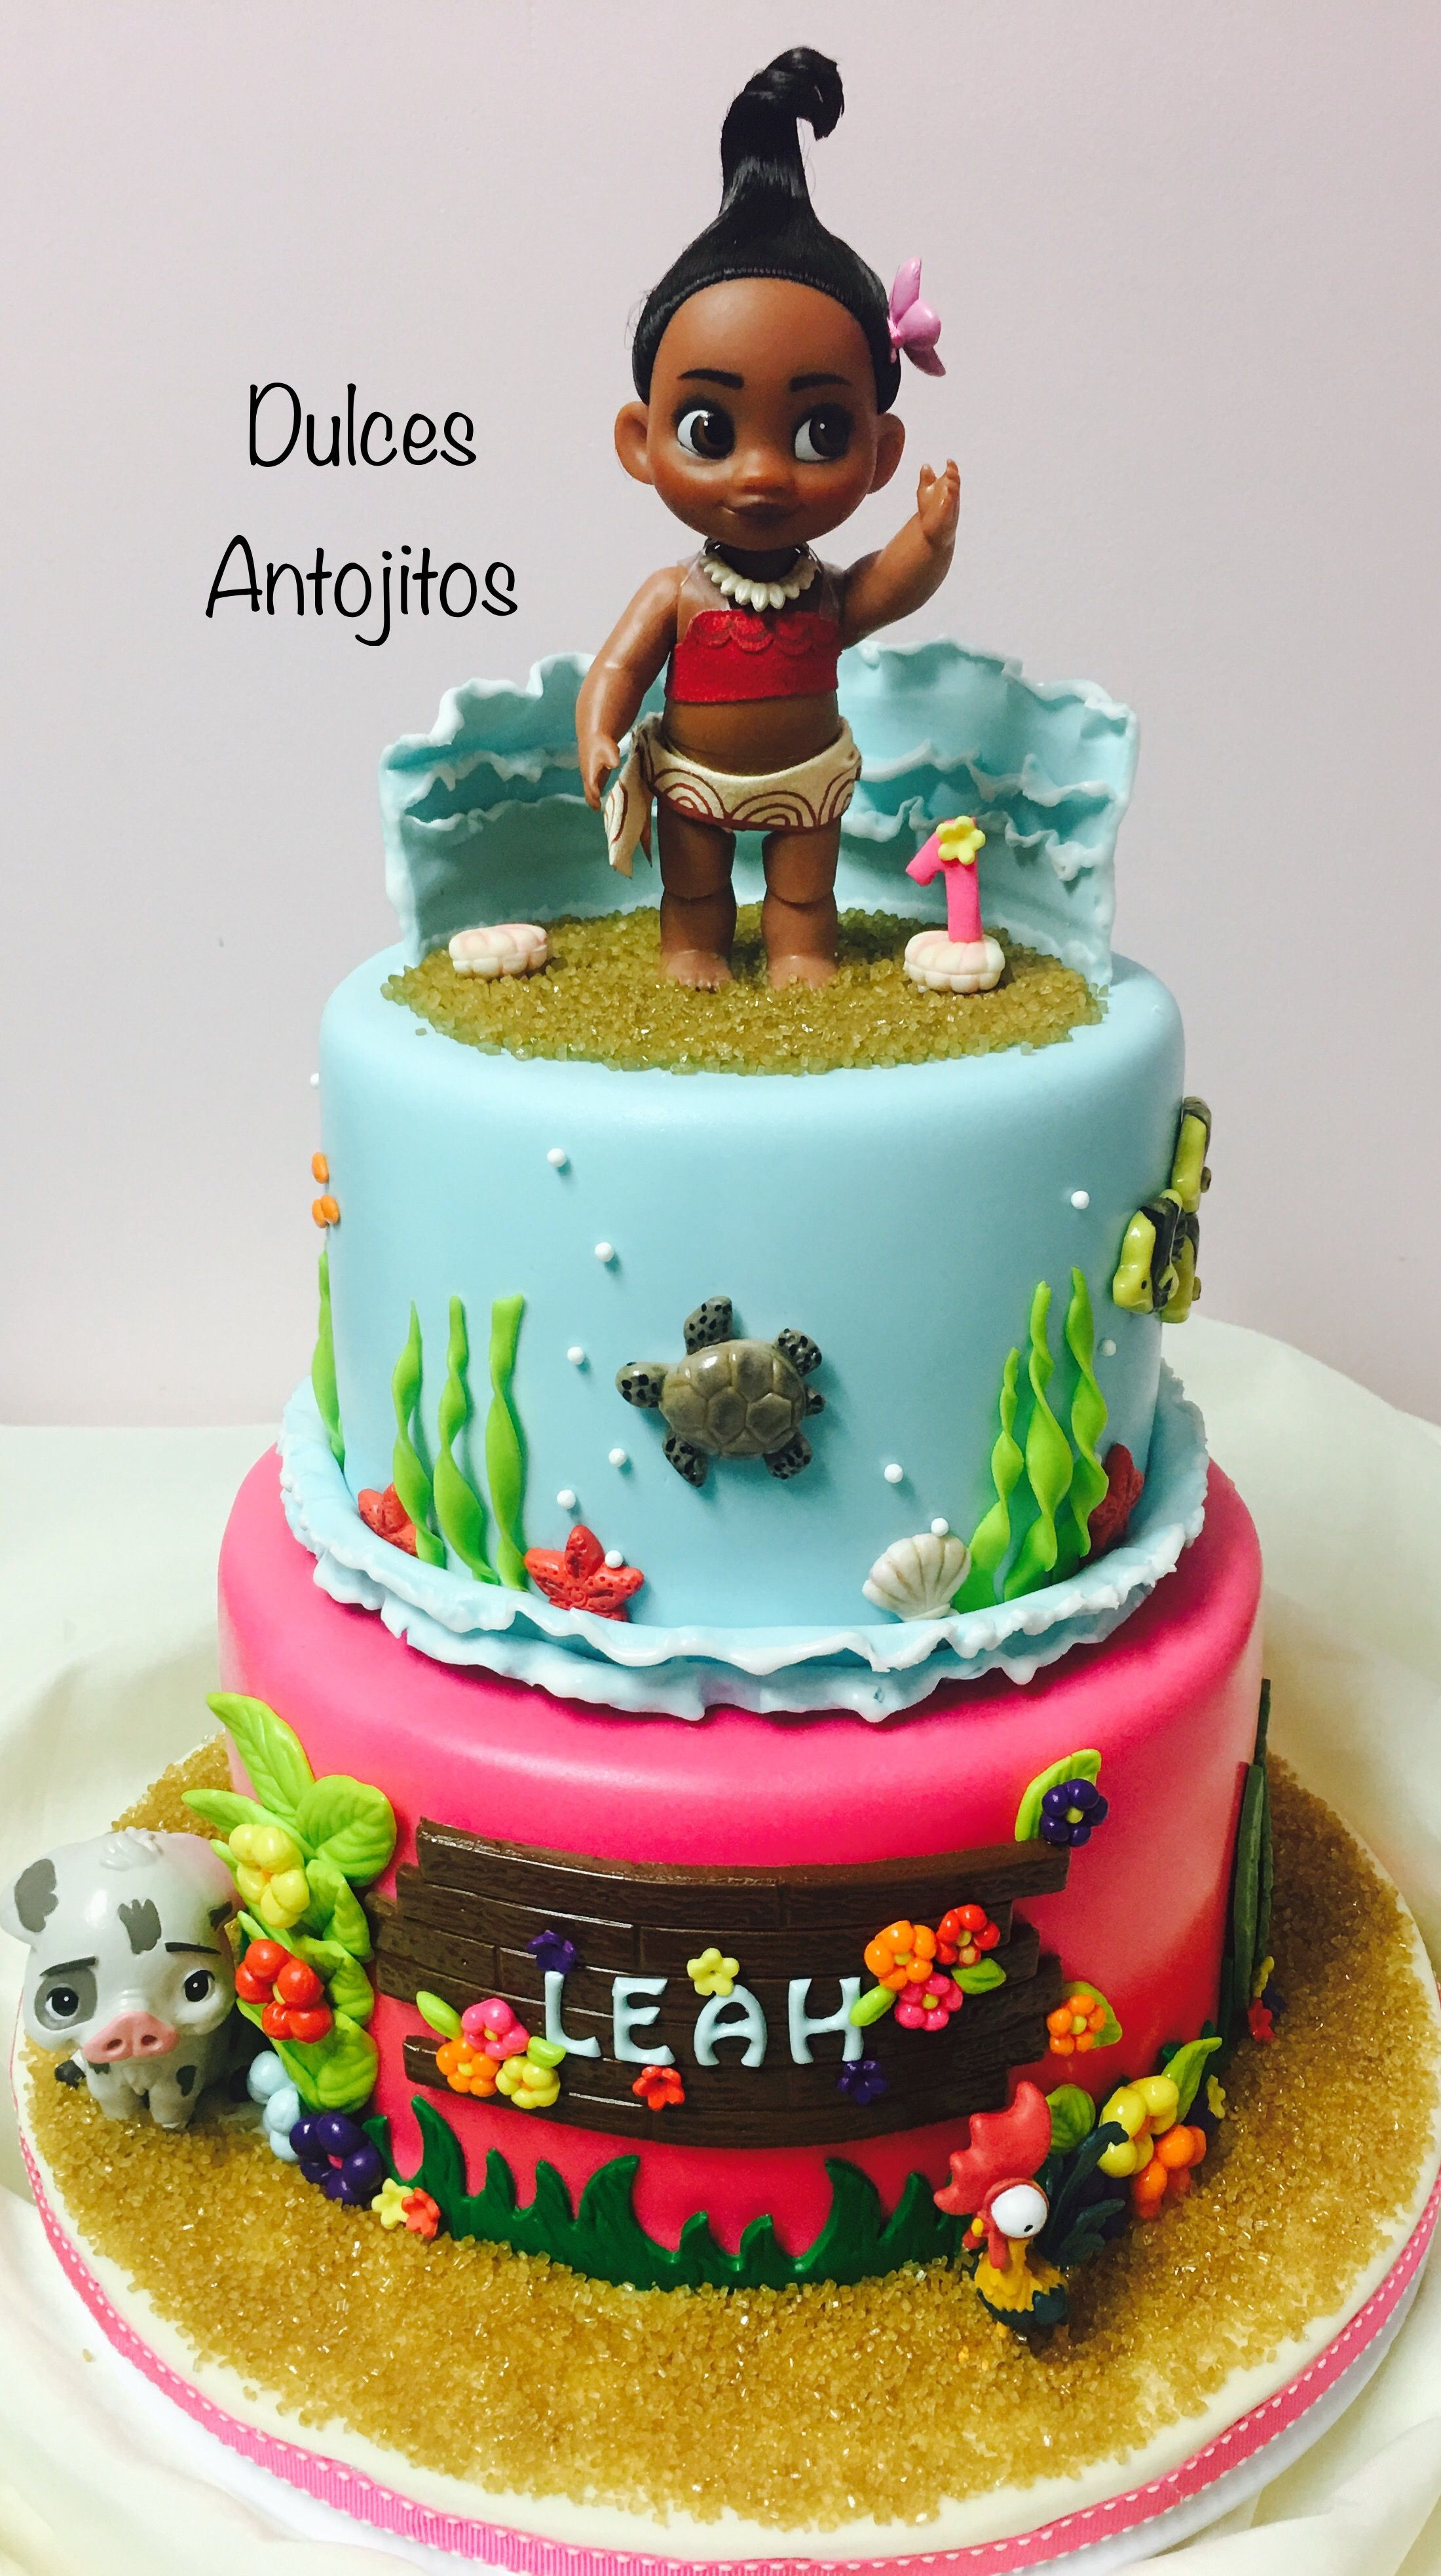 Moana Birthday Cake Ideas  Moana s birthday cake Cakes Pinterest